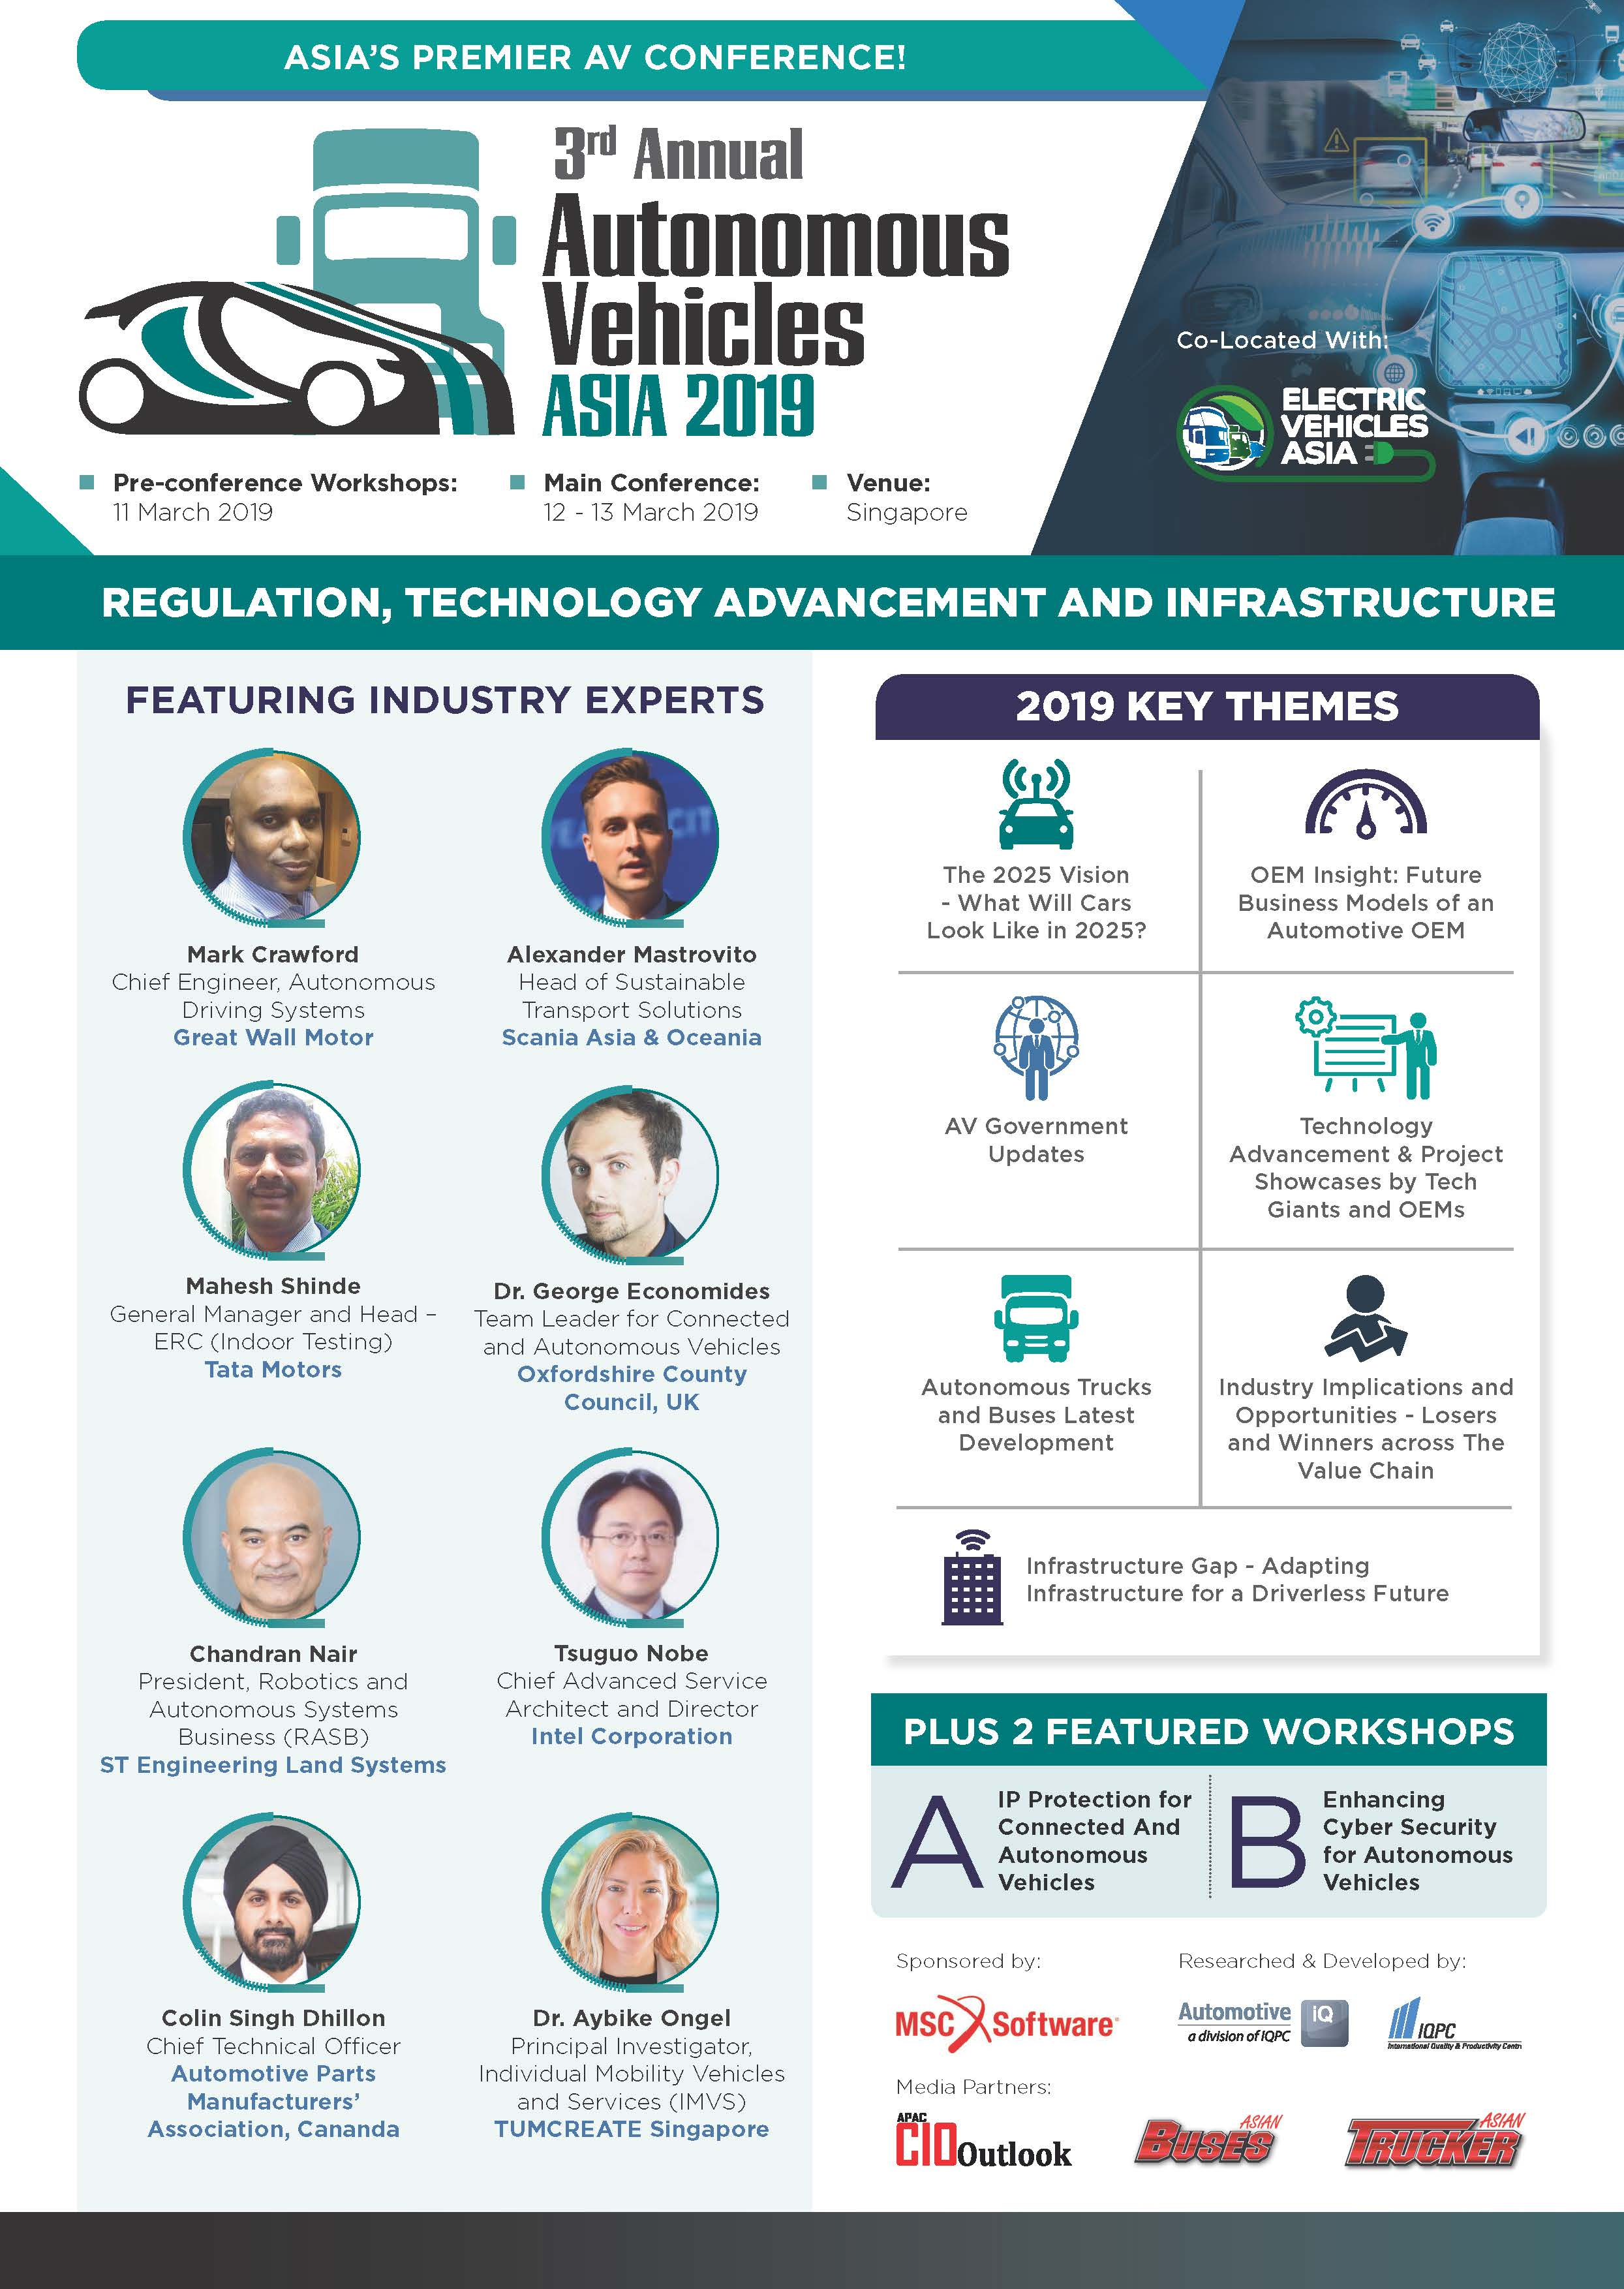 Download Your Event Guide - 2019 Autonomous Vehicles Asia Summit Brochure